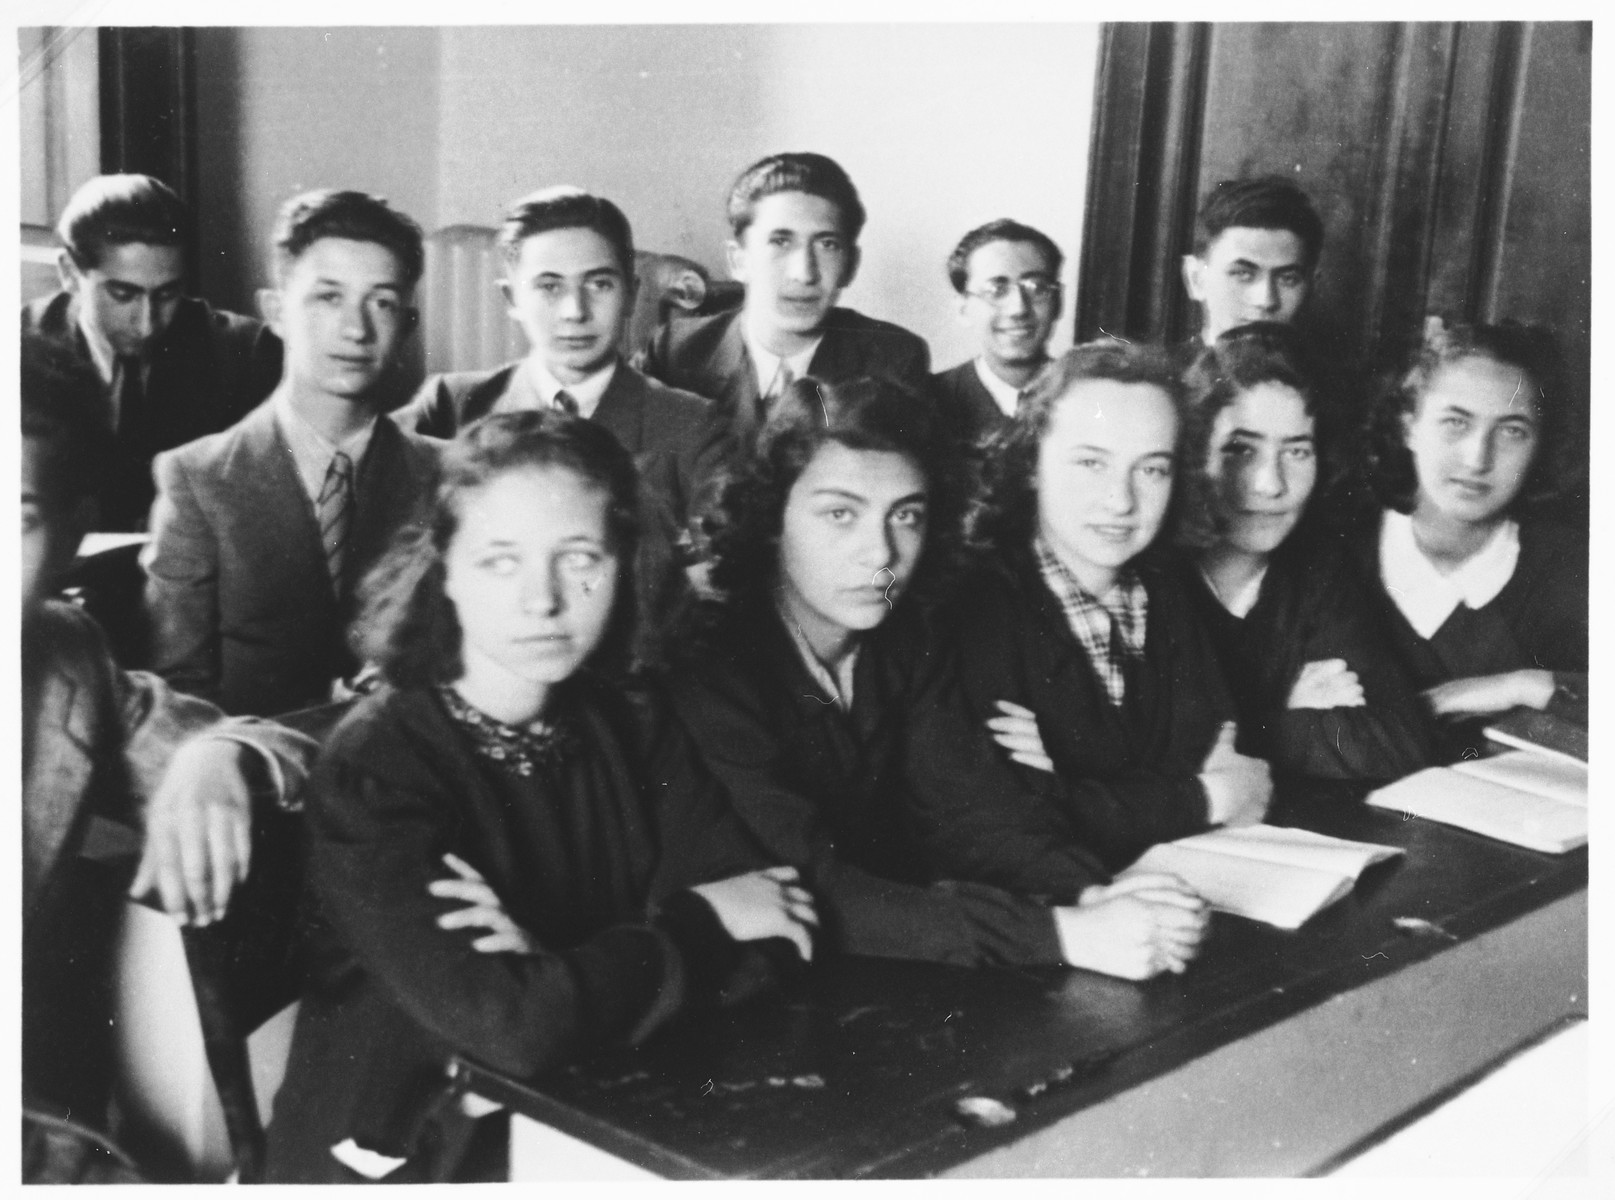 Students in the Jewish high school in Milan.